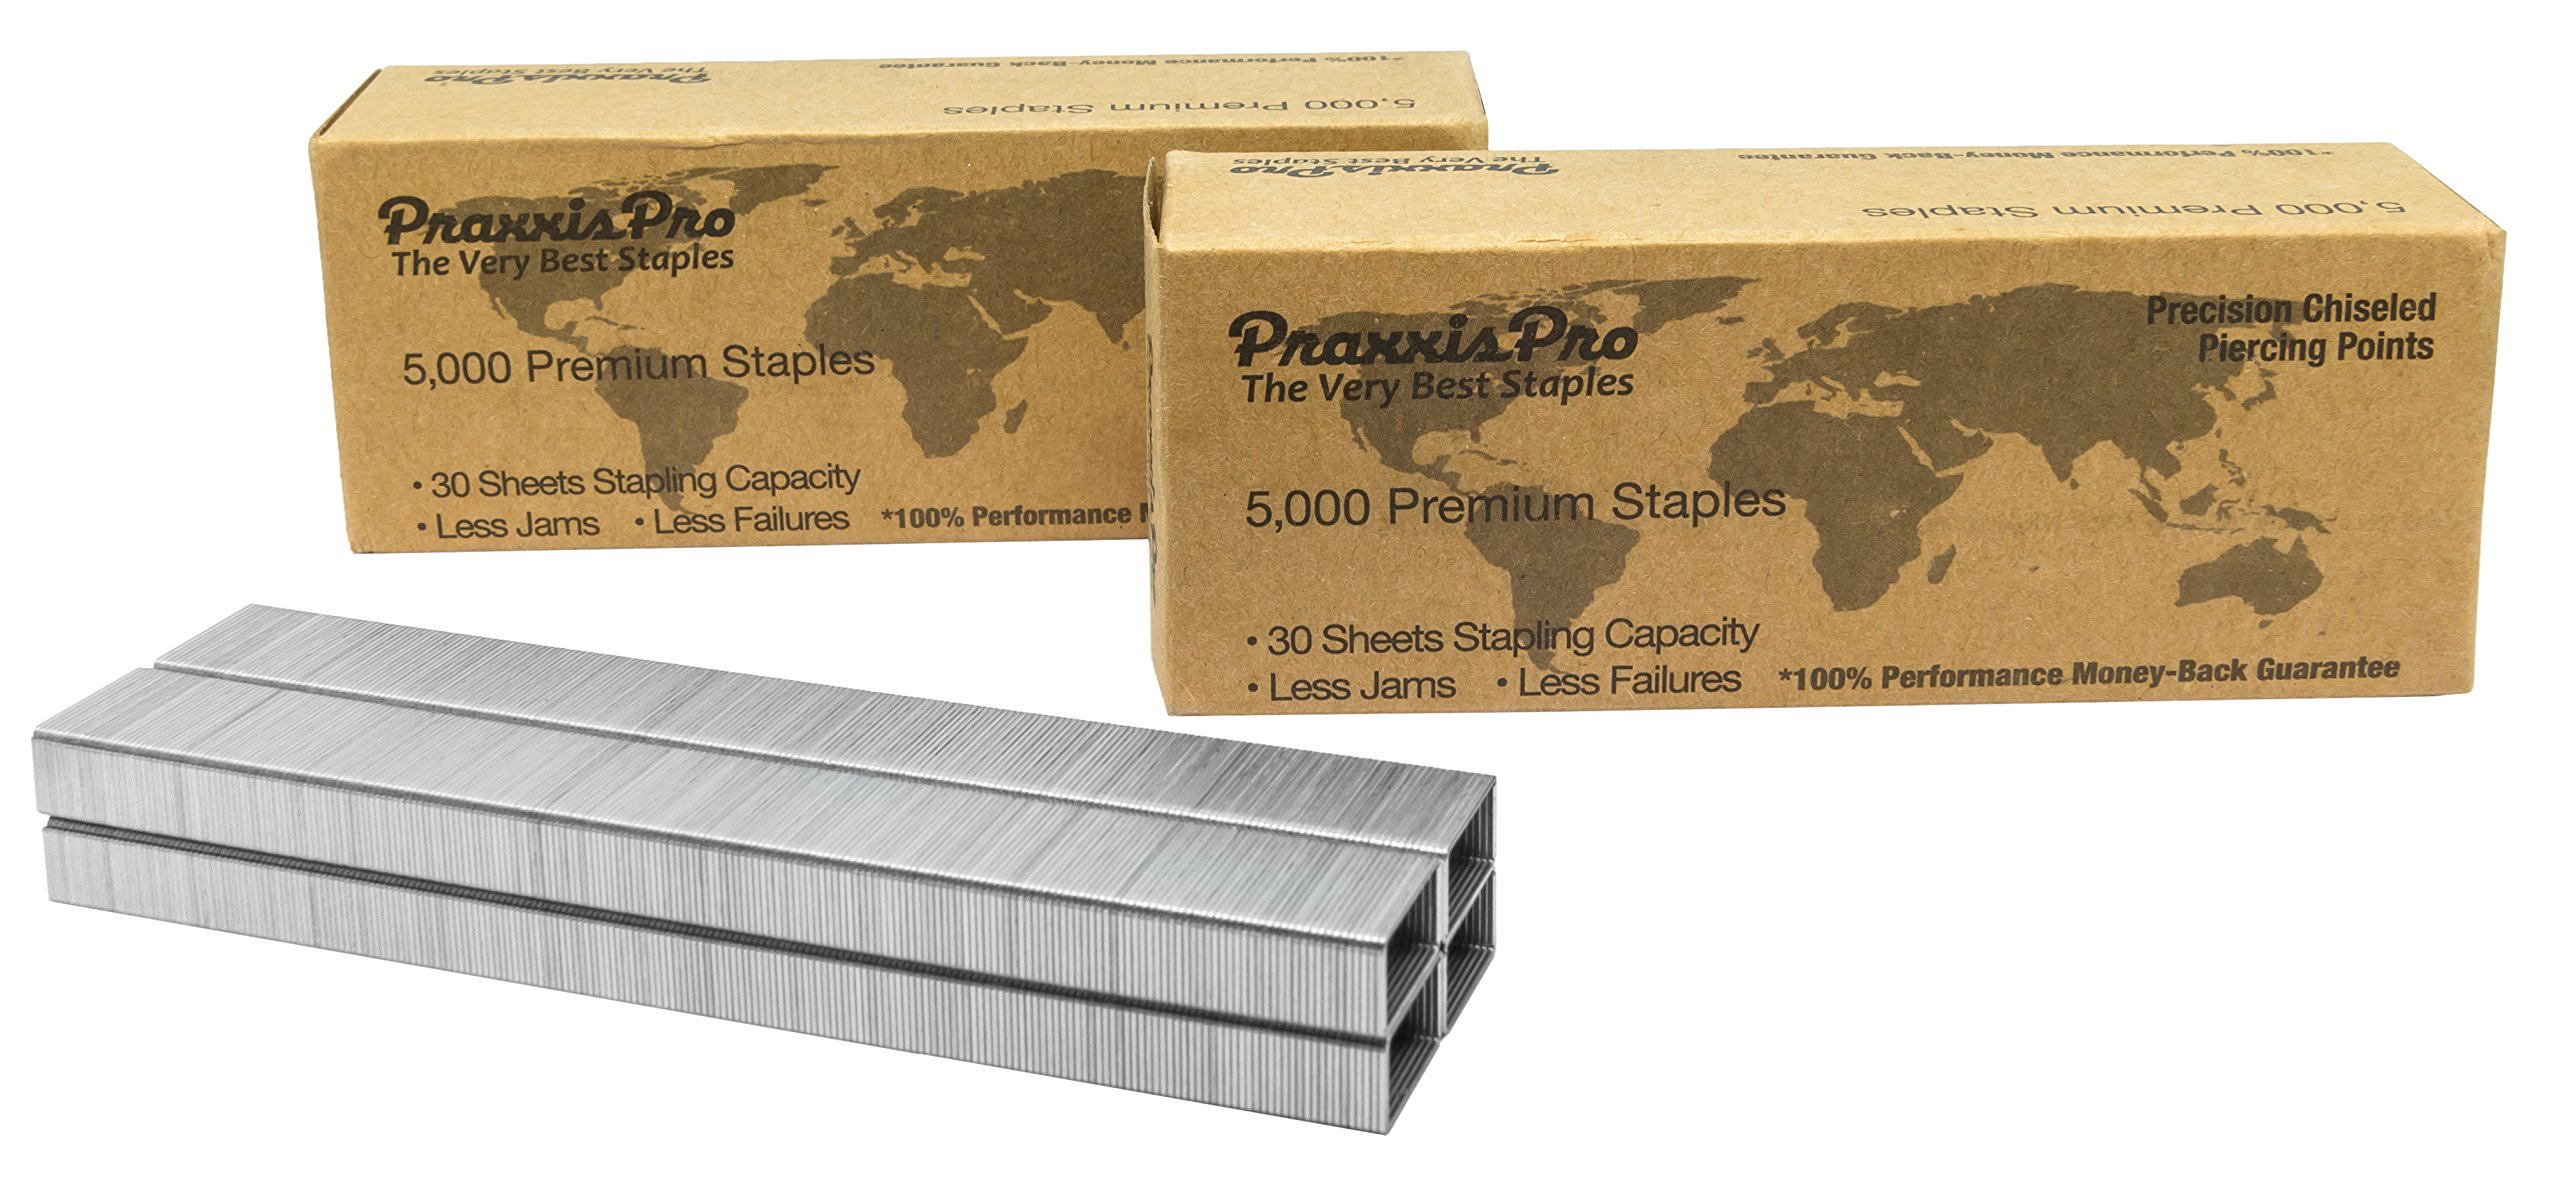 PraxxisPro Powerhouse Premium Staples, 26/6, 25,000 Full-Strip Chisel Pointed Staples, 2 to 45 Sheets, for Powerhouse Electric Stapler and All Standard Staplers - for Office and Home Use